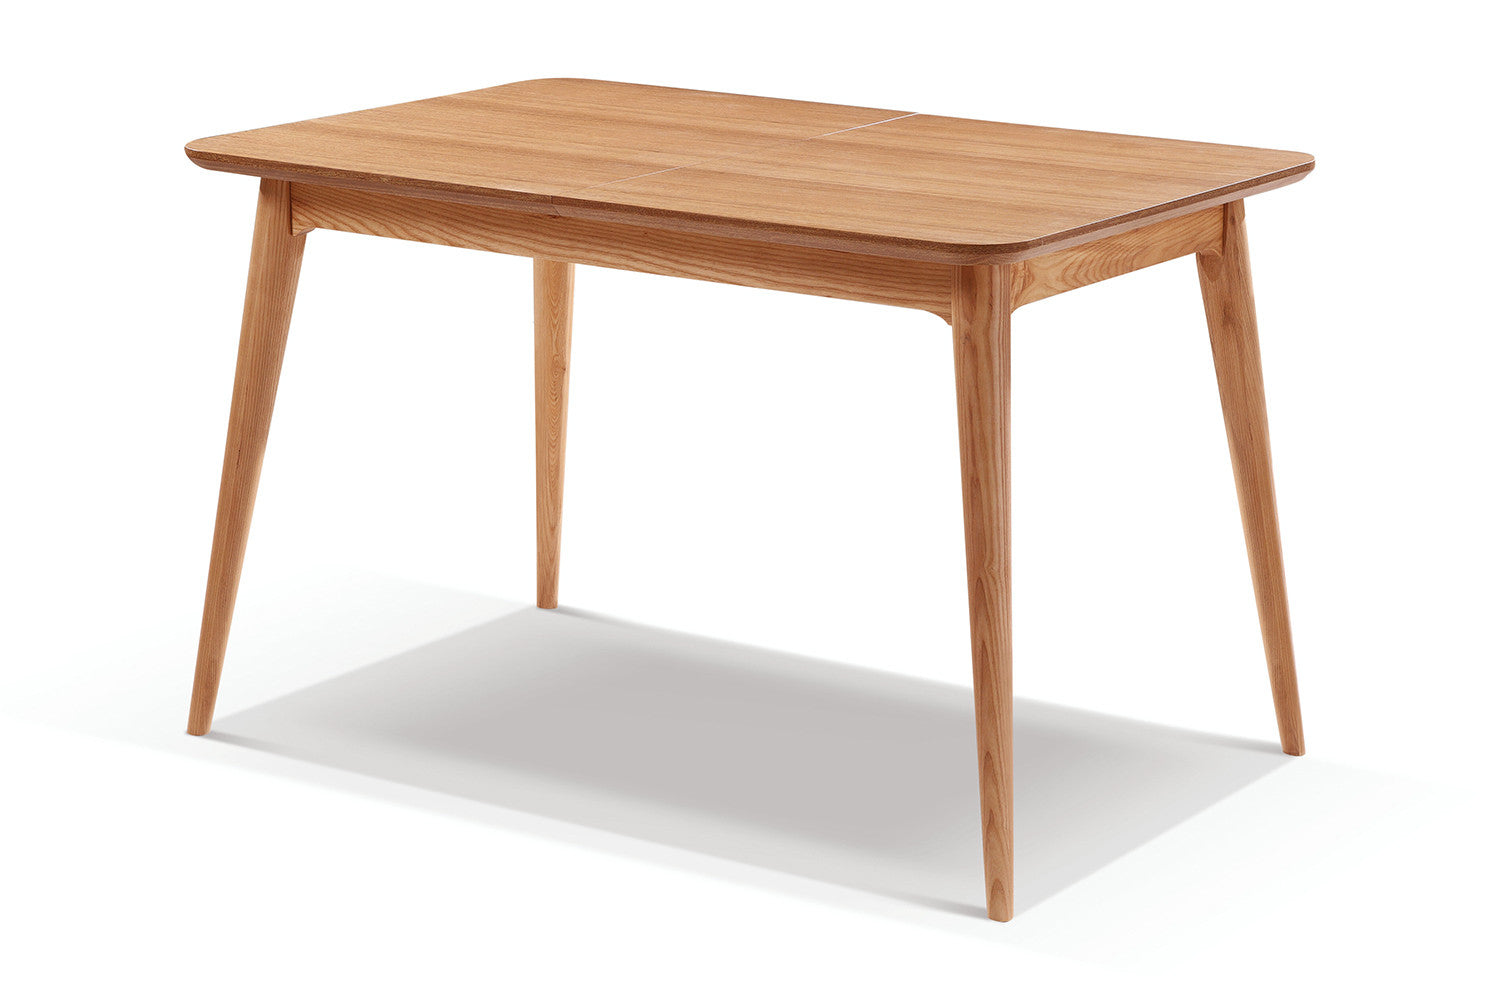 Table en bois extensible - Table ronde extensible bois ...